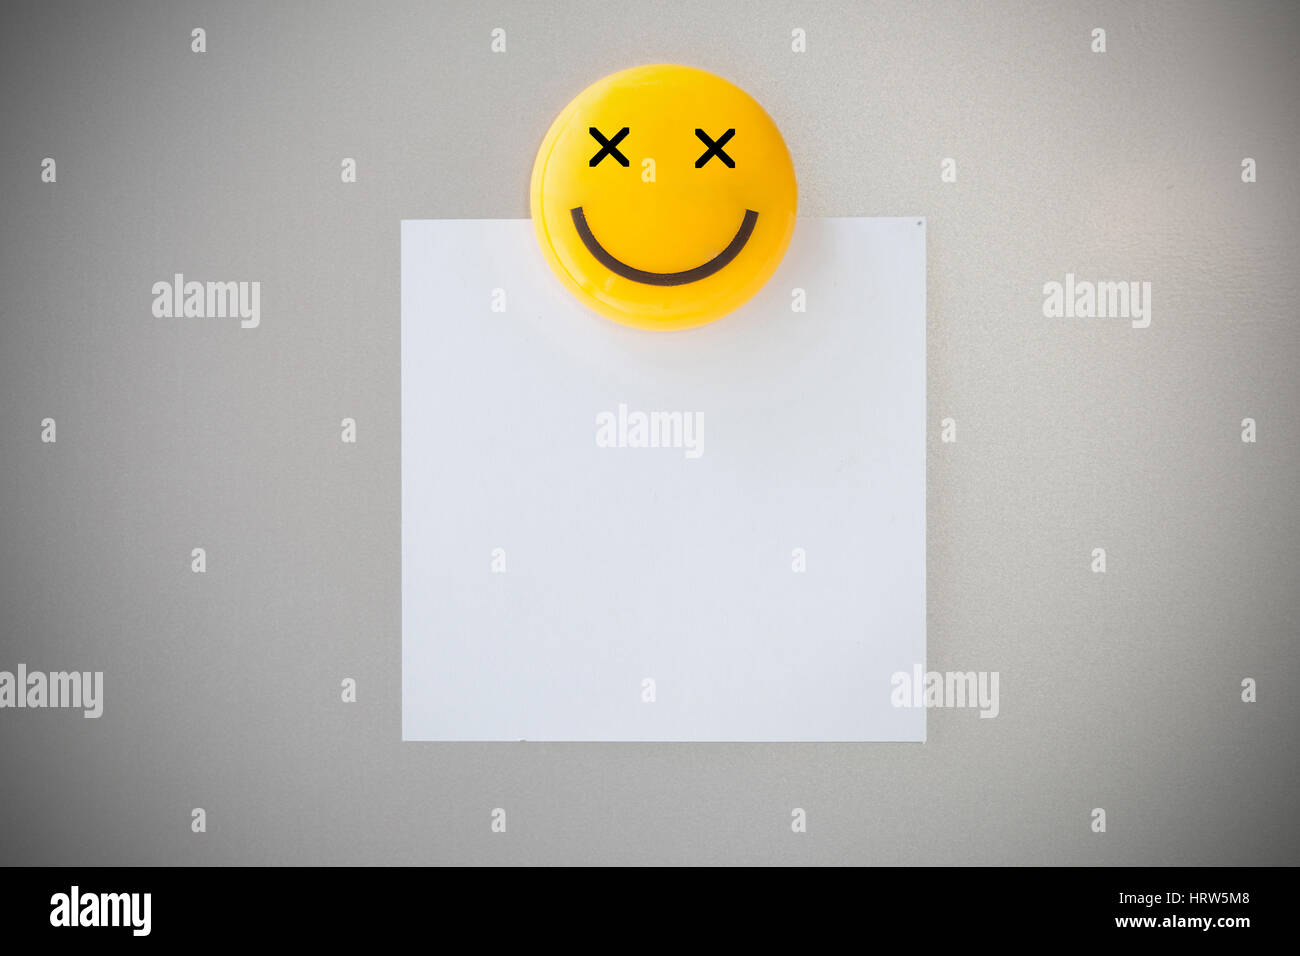 Magnet Board Stock Photos Amp Magnet Board Stock Images